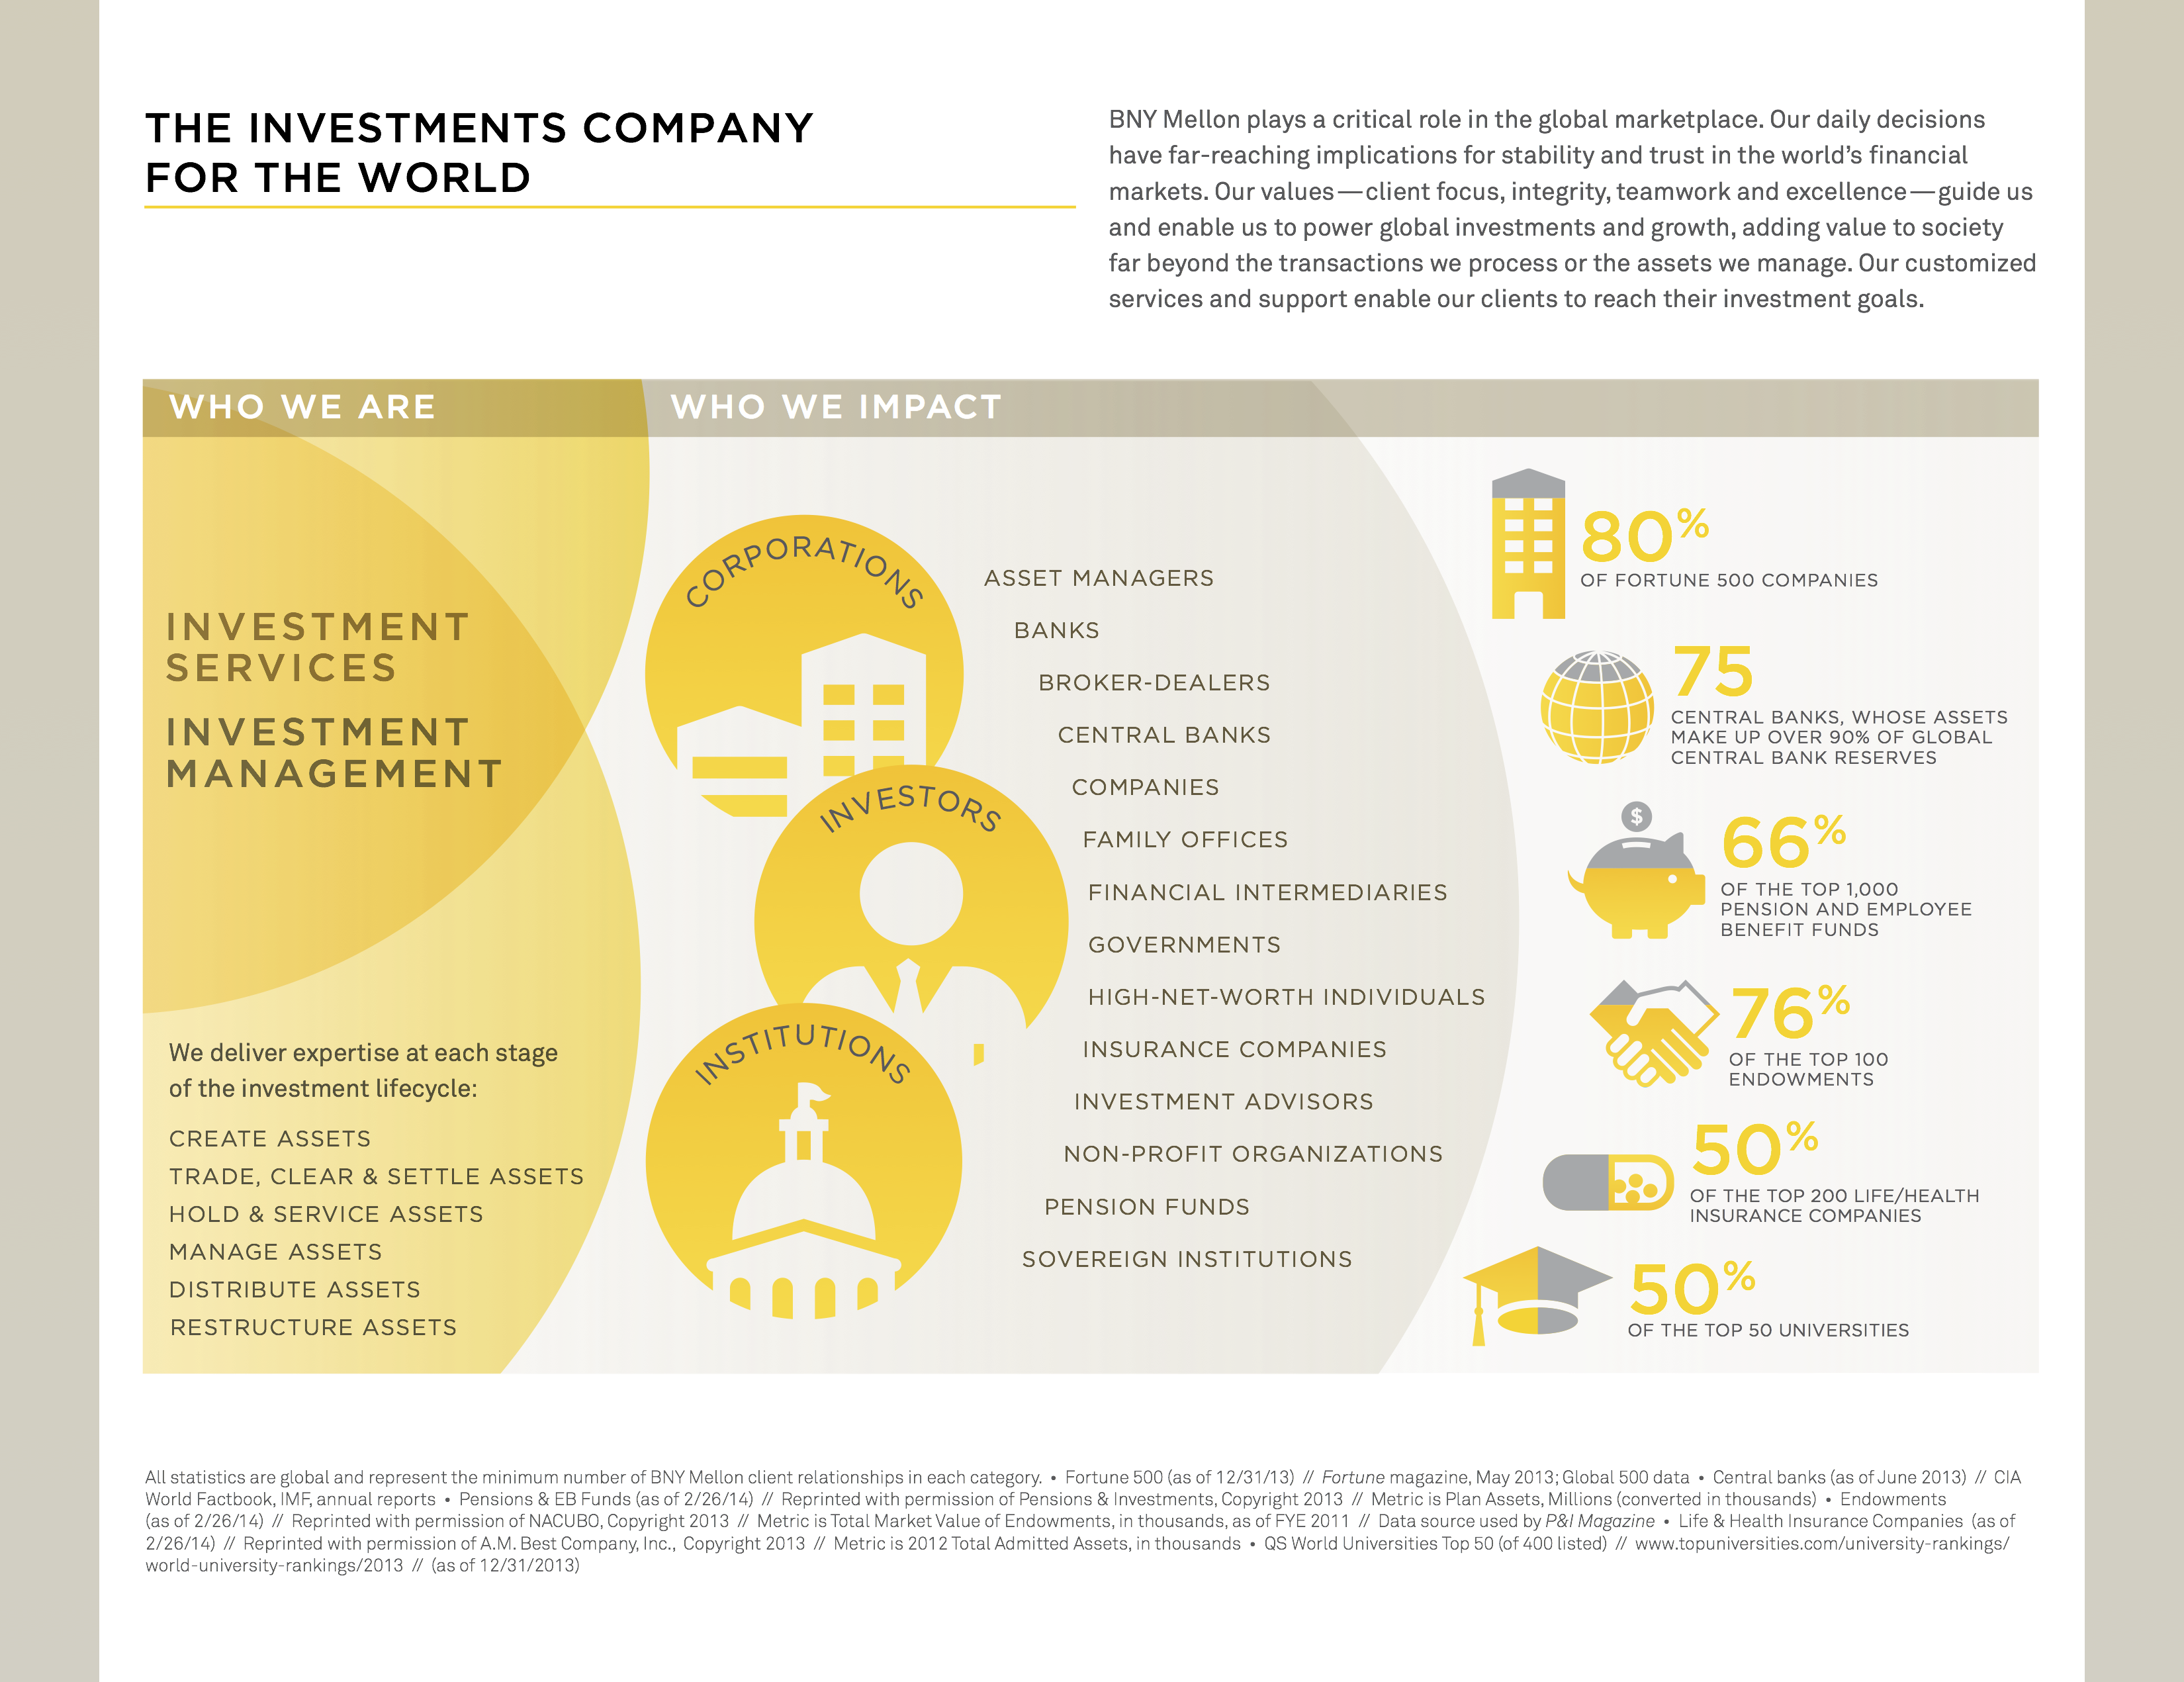 BNY Mellon: 2014 Corporate Social Responsibility Overview